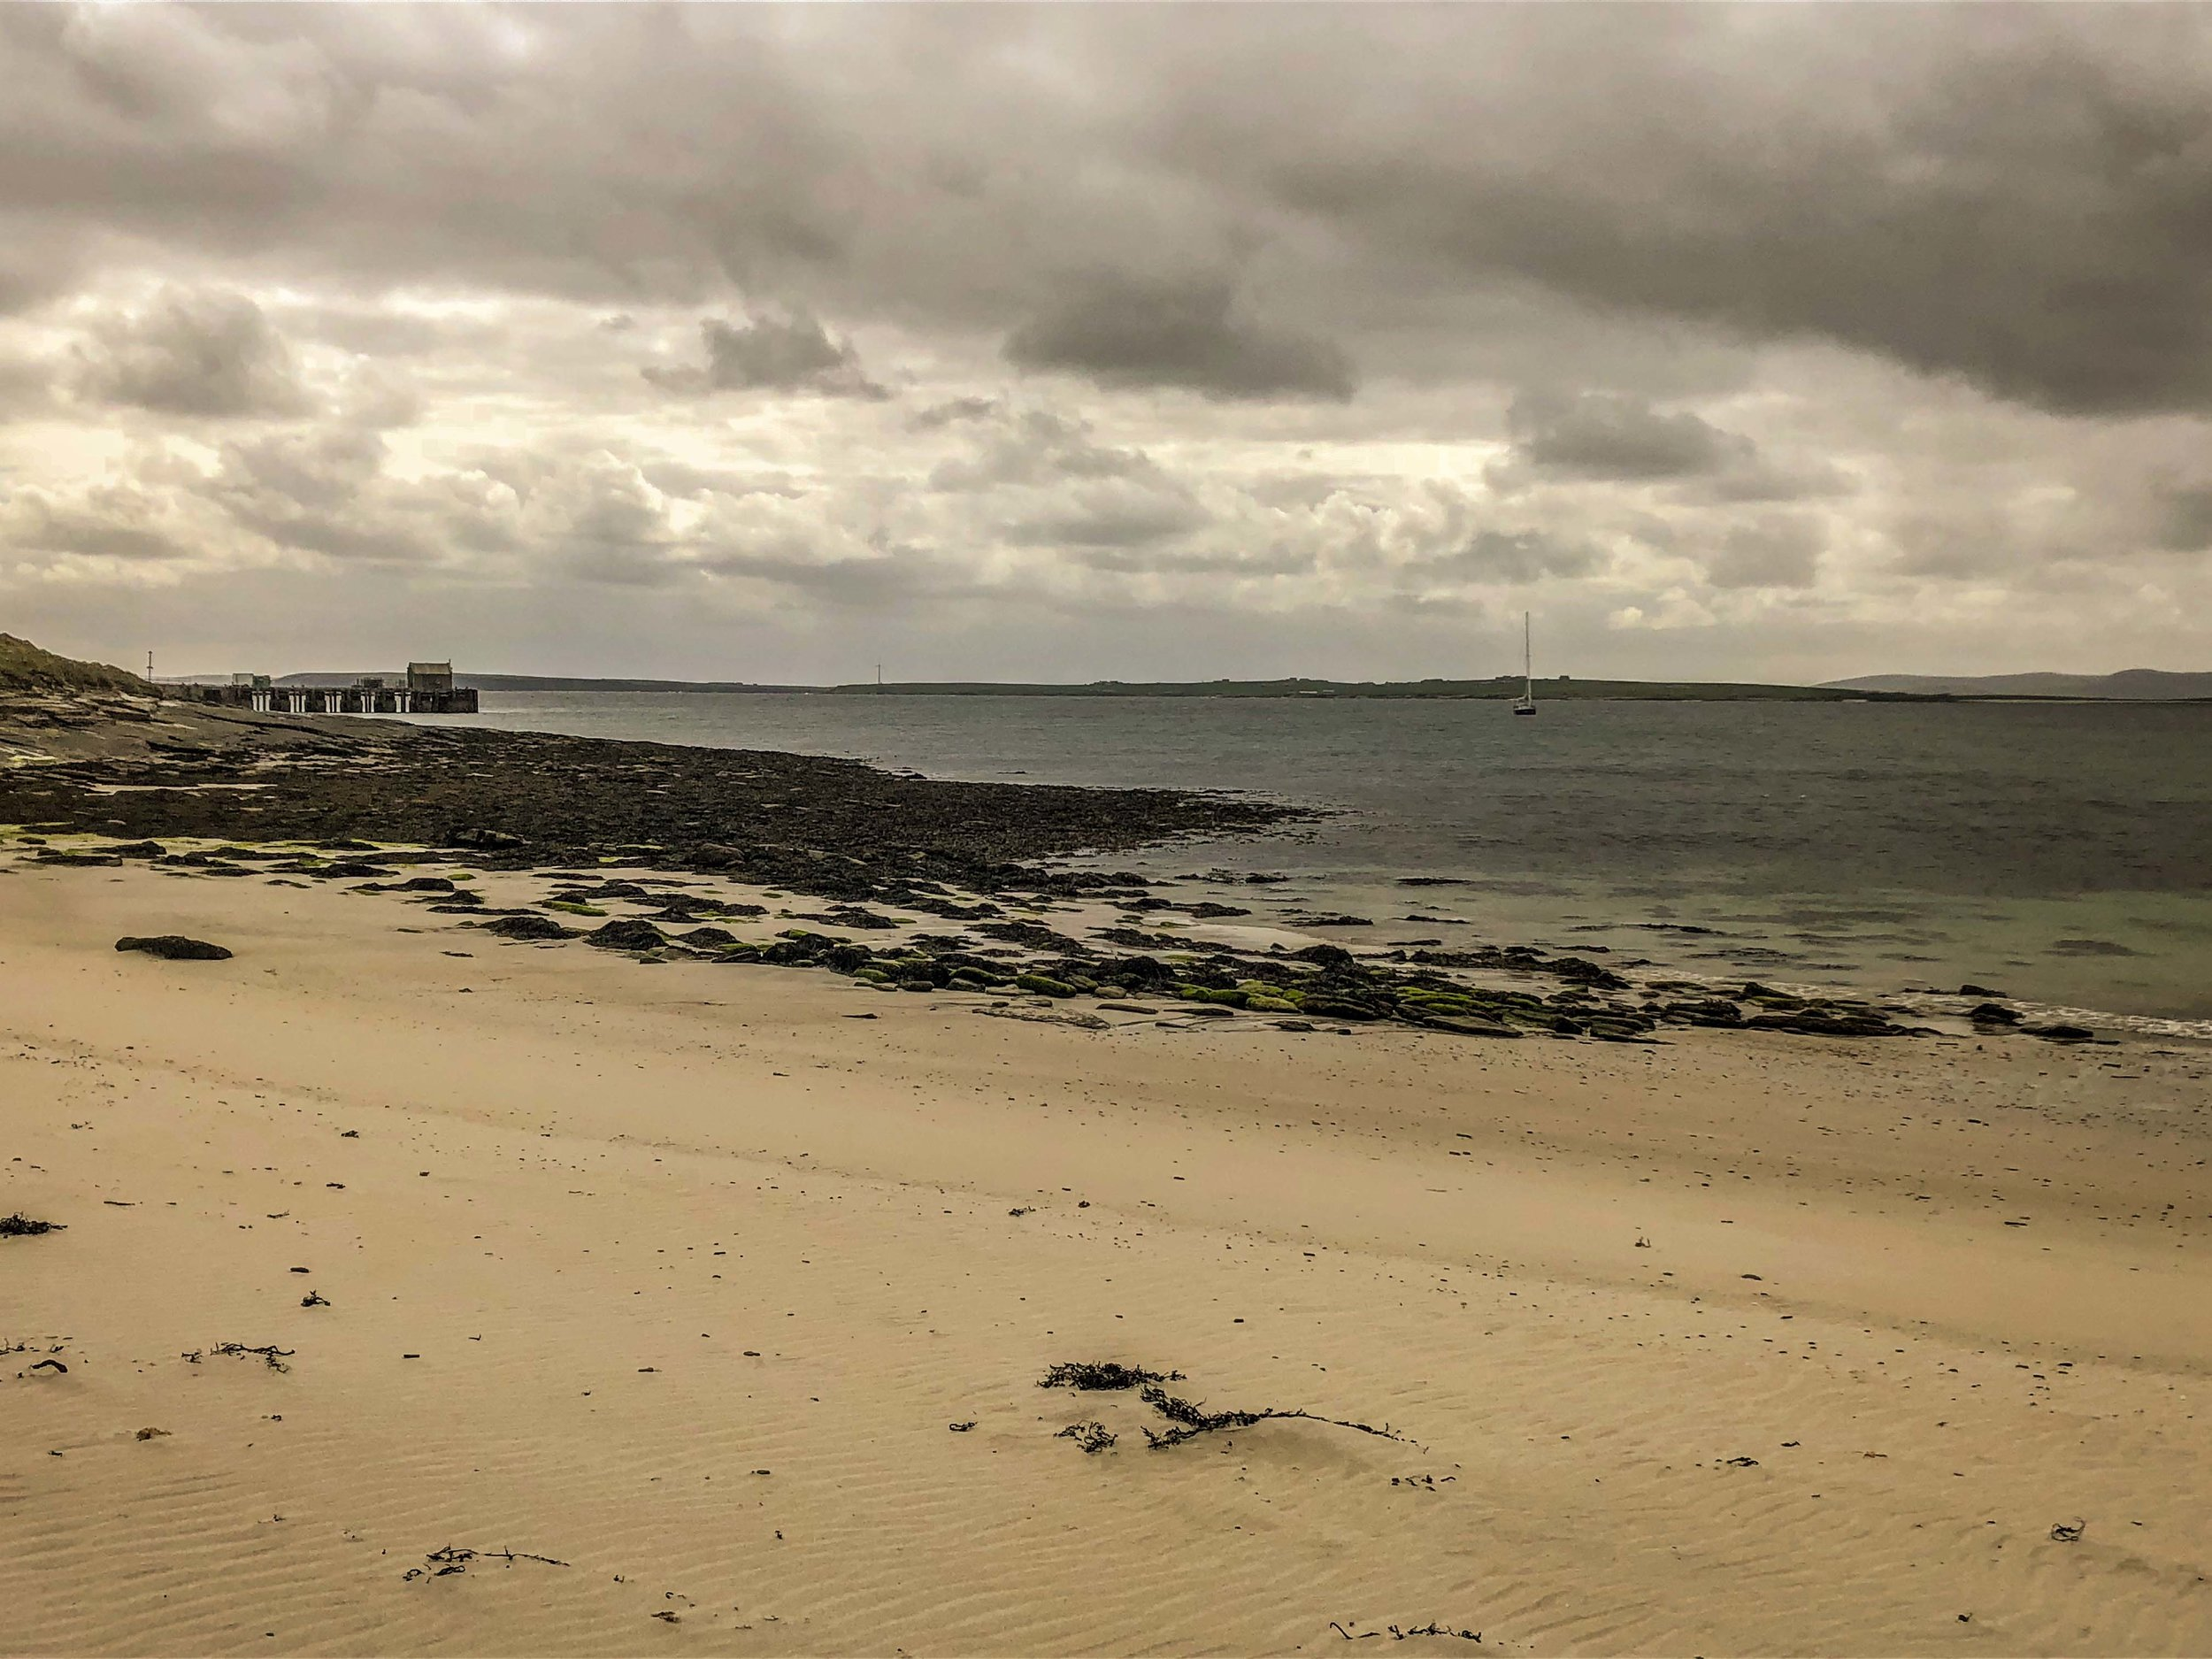 The anchorage and beach on Papa Westray